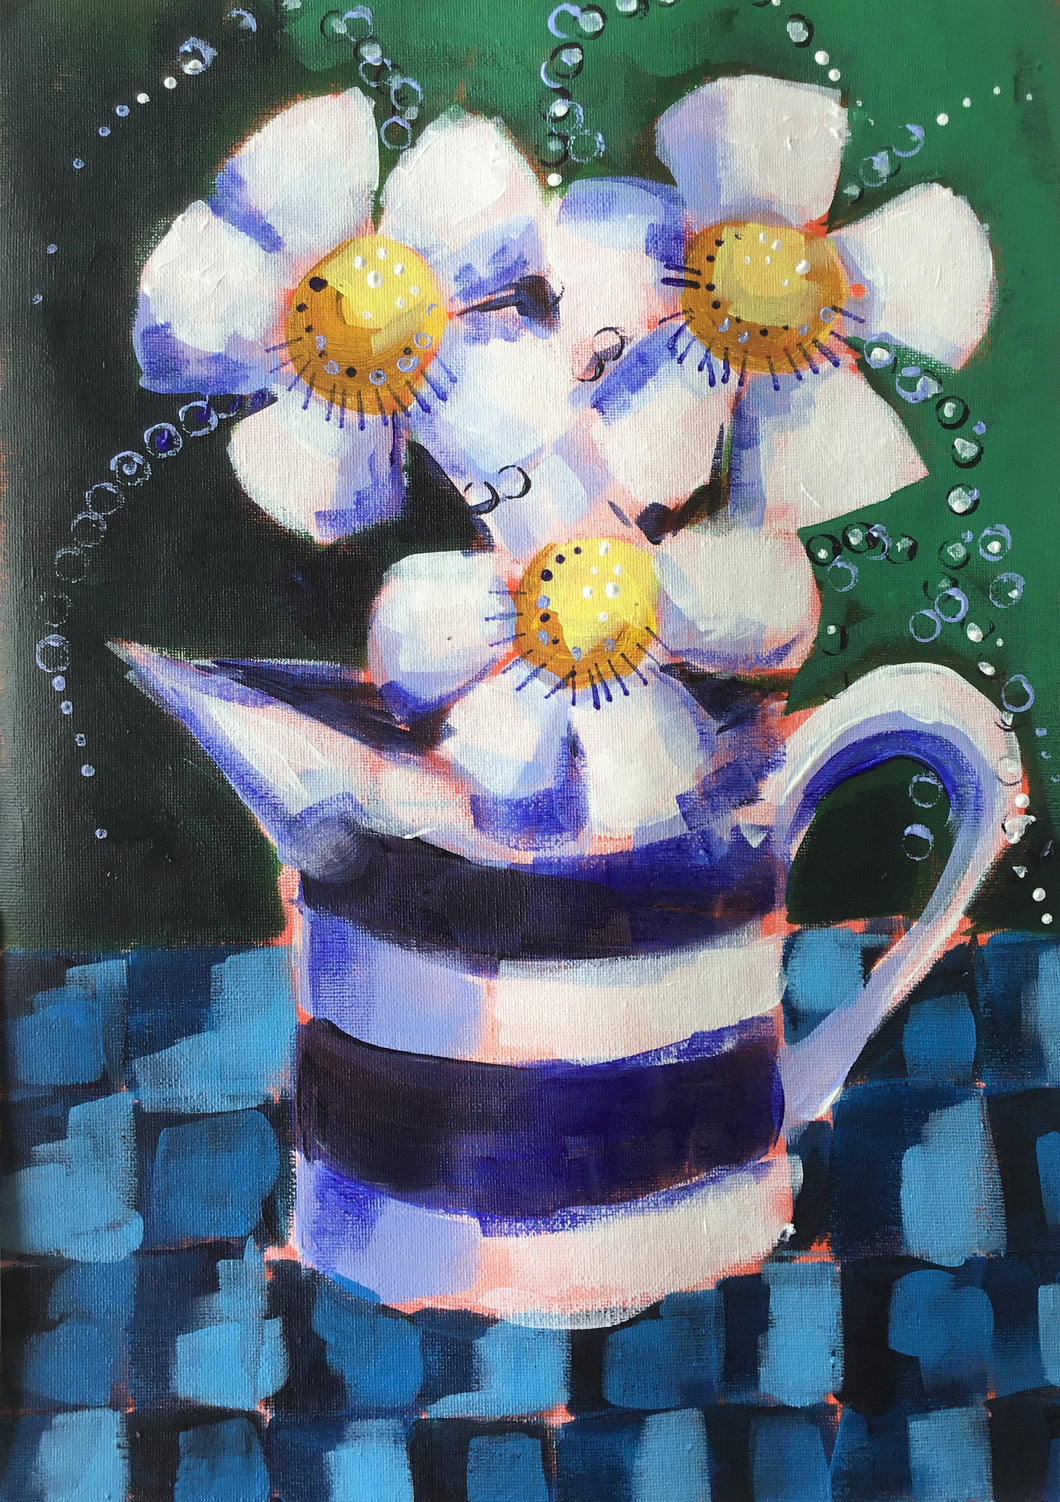 Blue Jug : Downloadable Guided Painting : step by step instructions plus how to video and narration